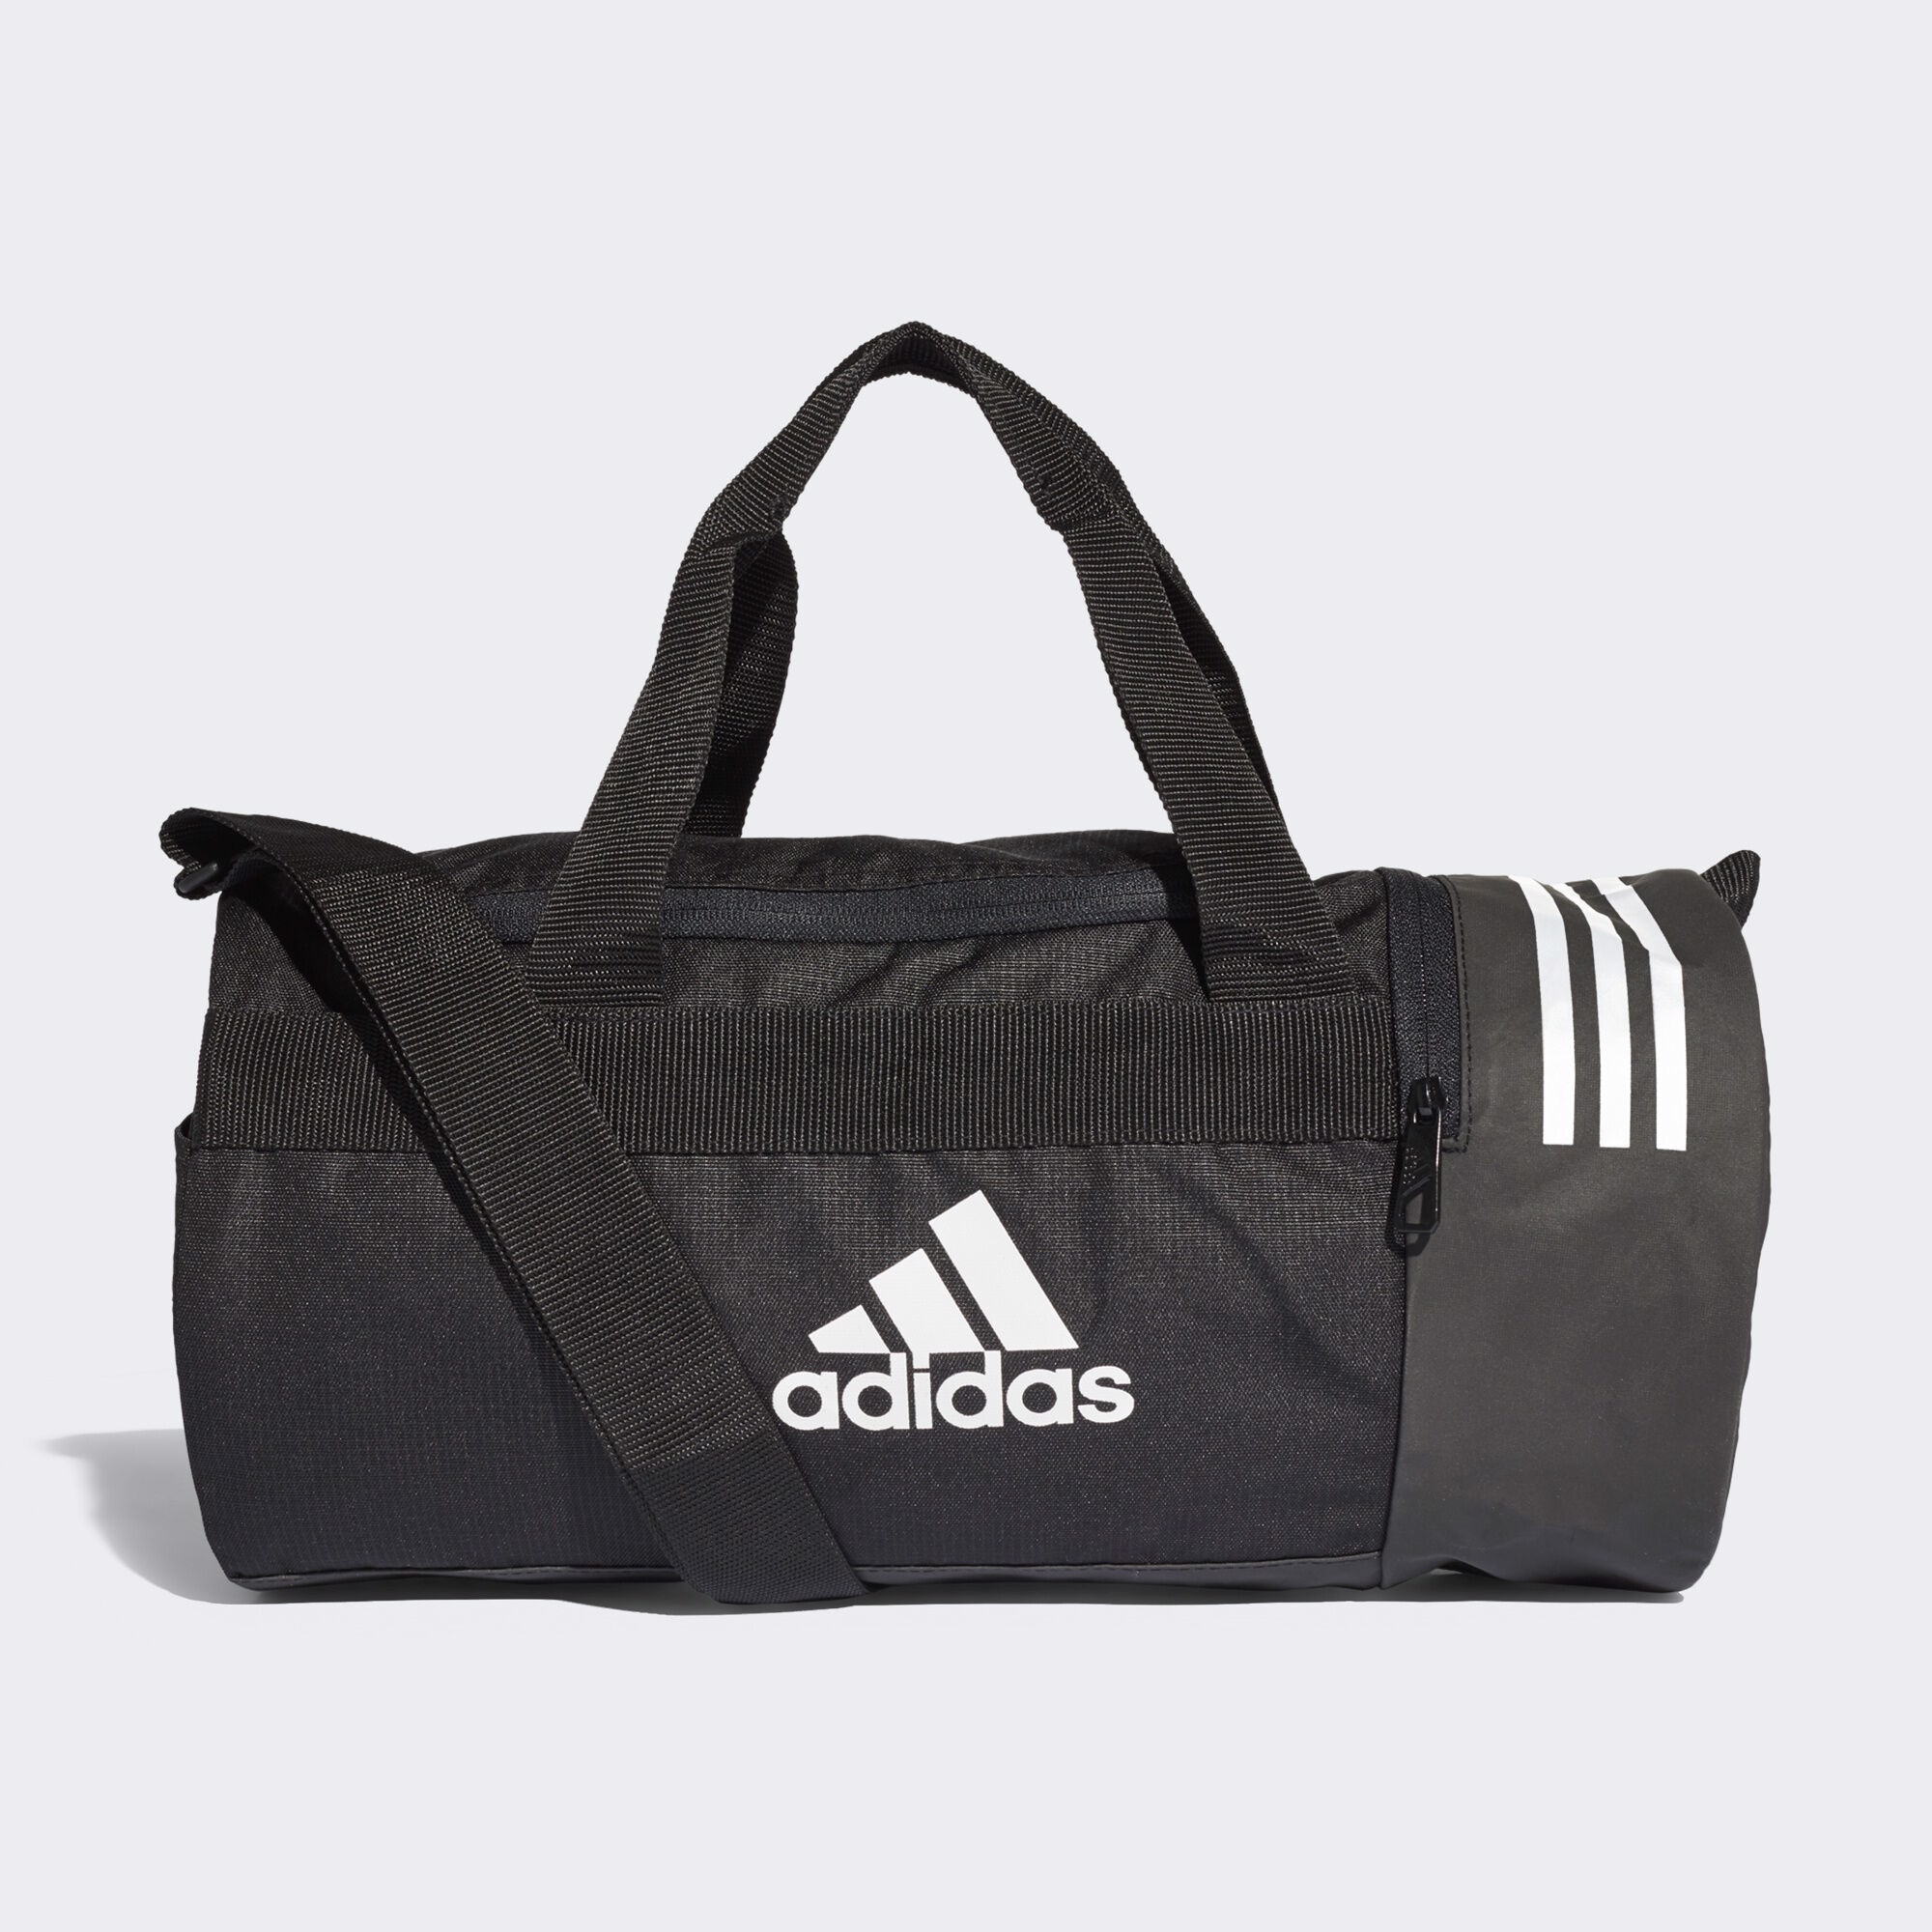 3-STRIPES DUFFEL BAG EXTRA SMALL